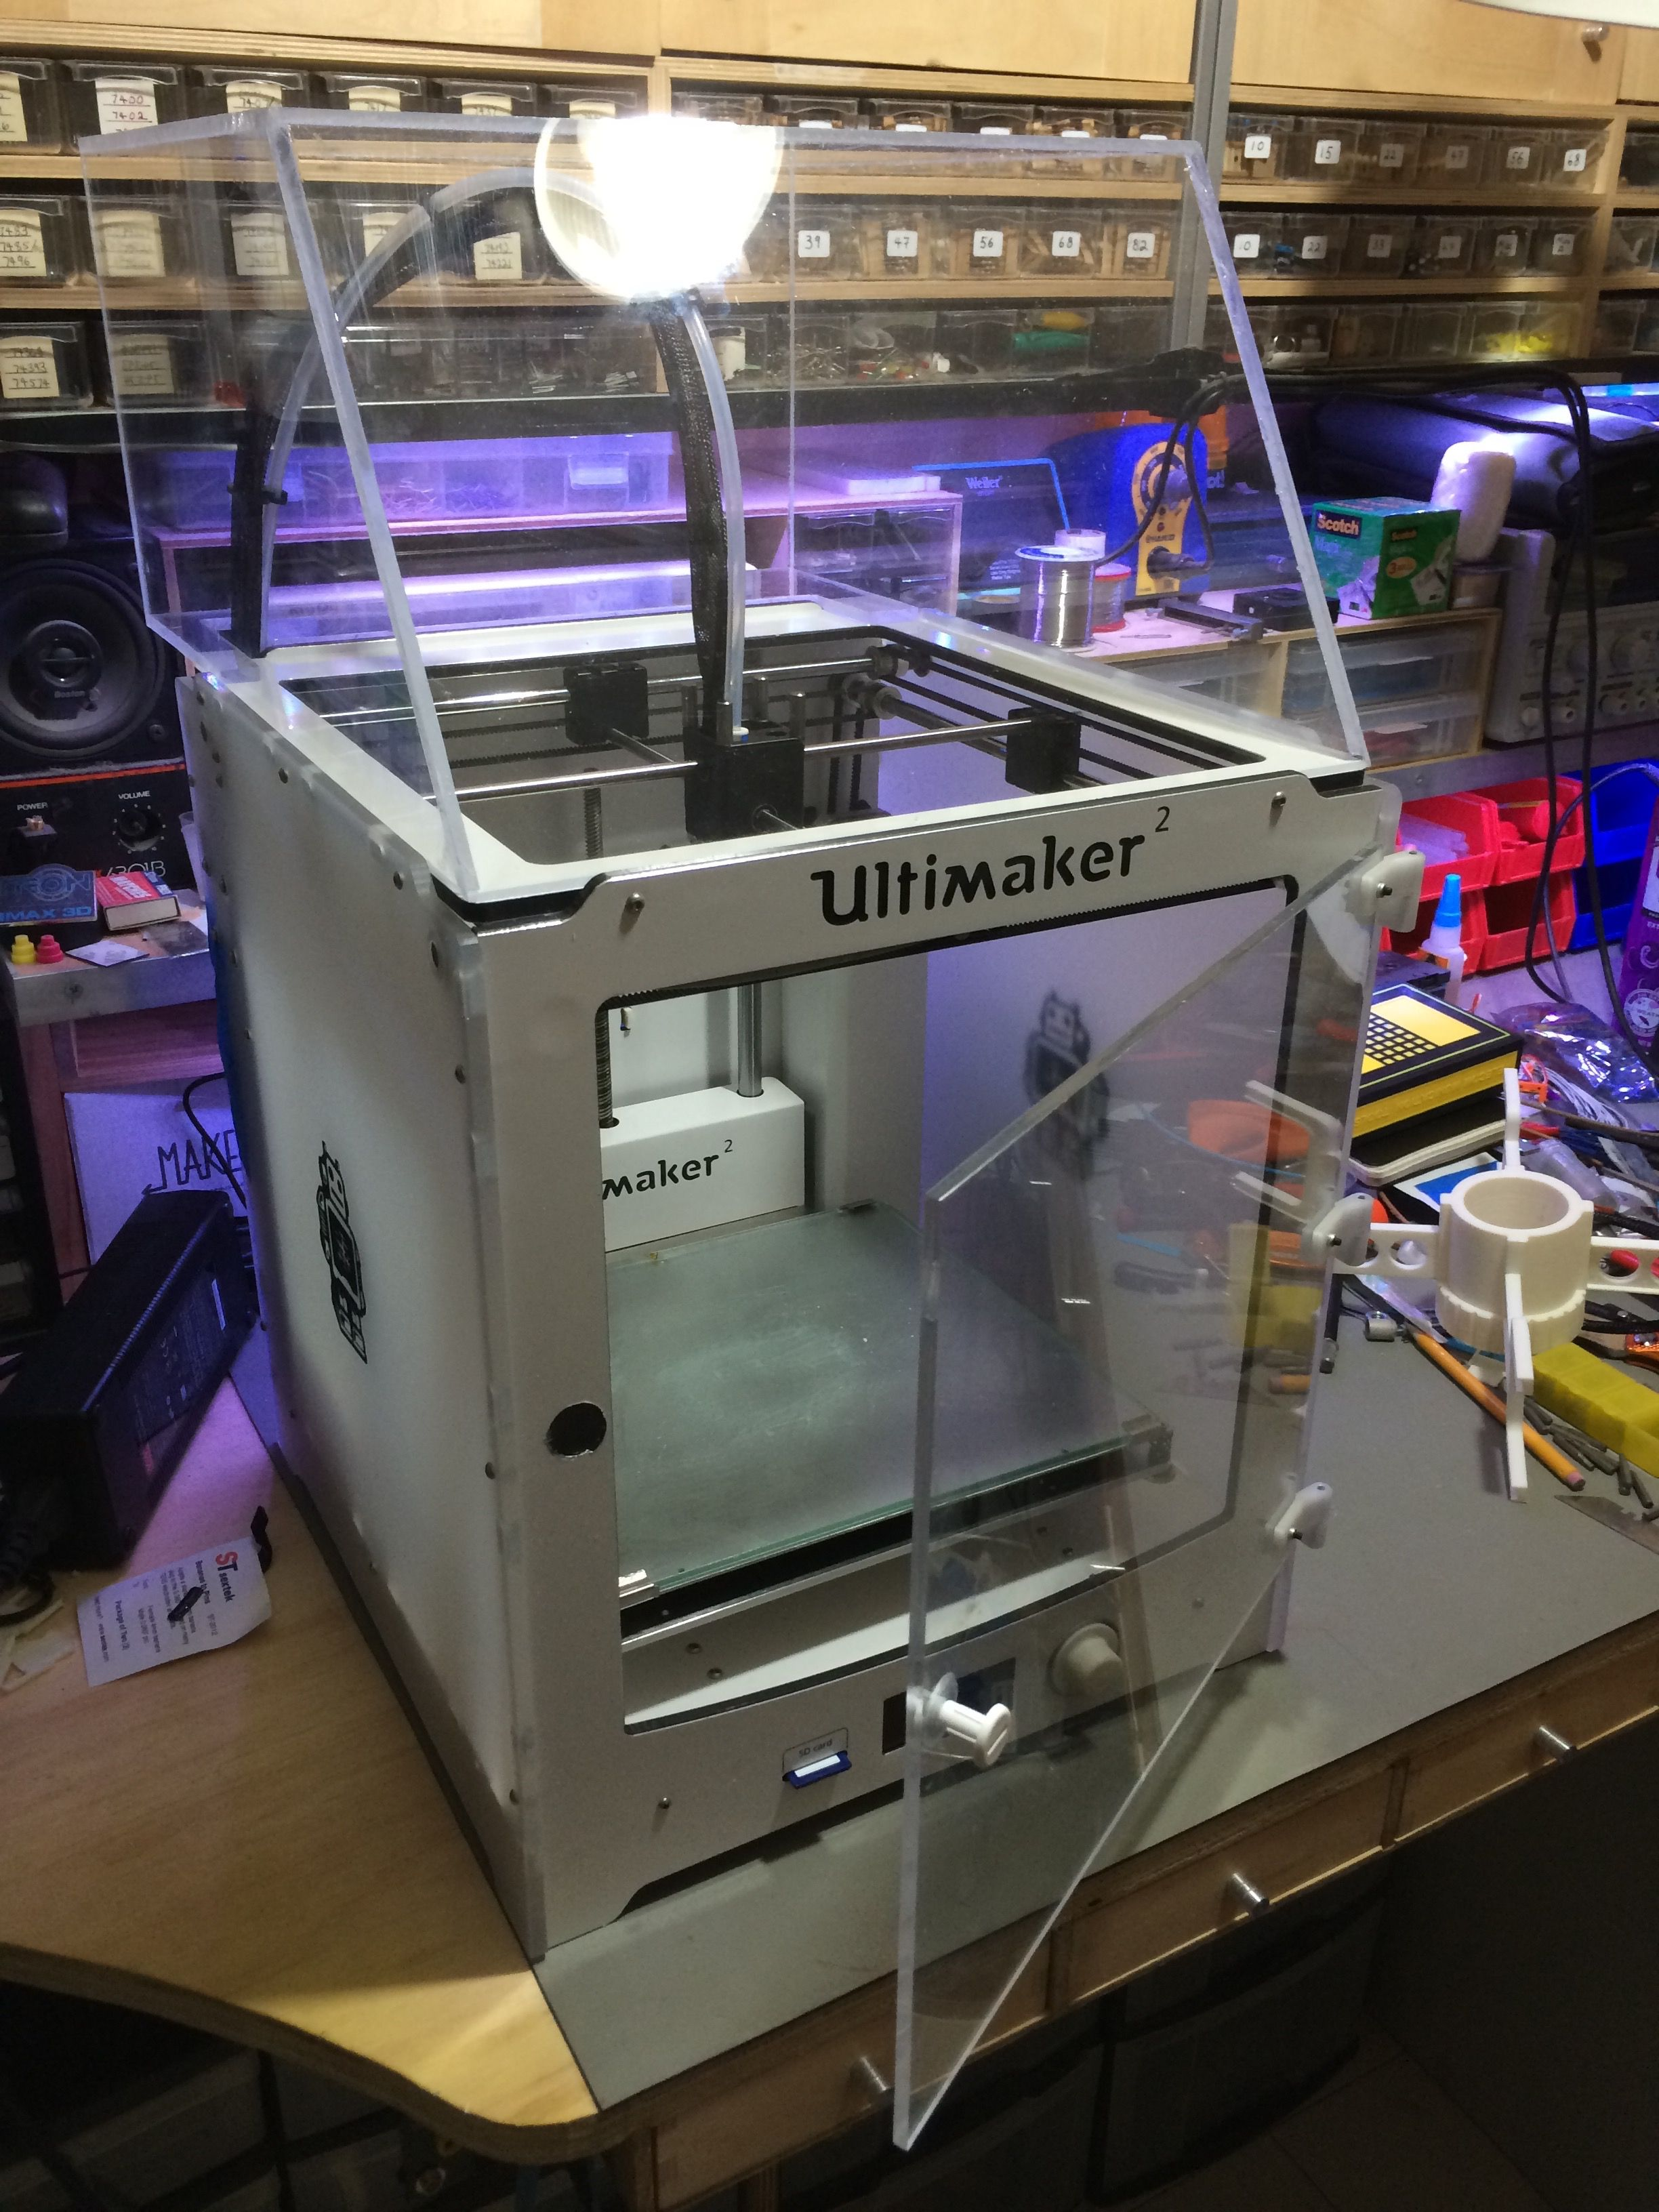 Fabricated a transparent acrylic cover and door for my Ultimaker2 3D printer. Keeps the noise down and the heat in (for warp-free ABS printing) & Fabricated a transparent acrylic cover and door for my Ultimaker2 3D ...